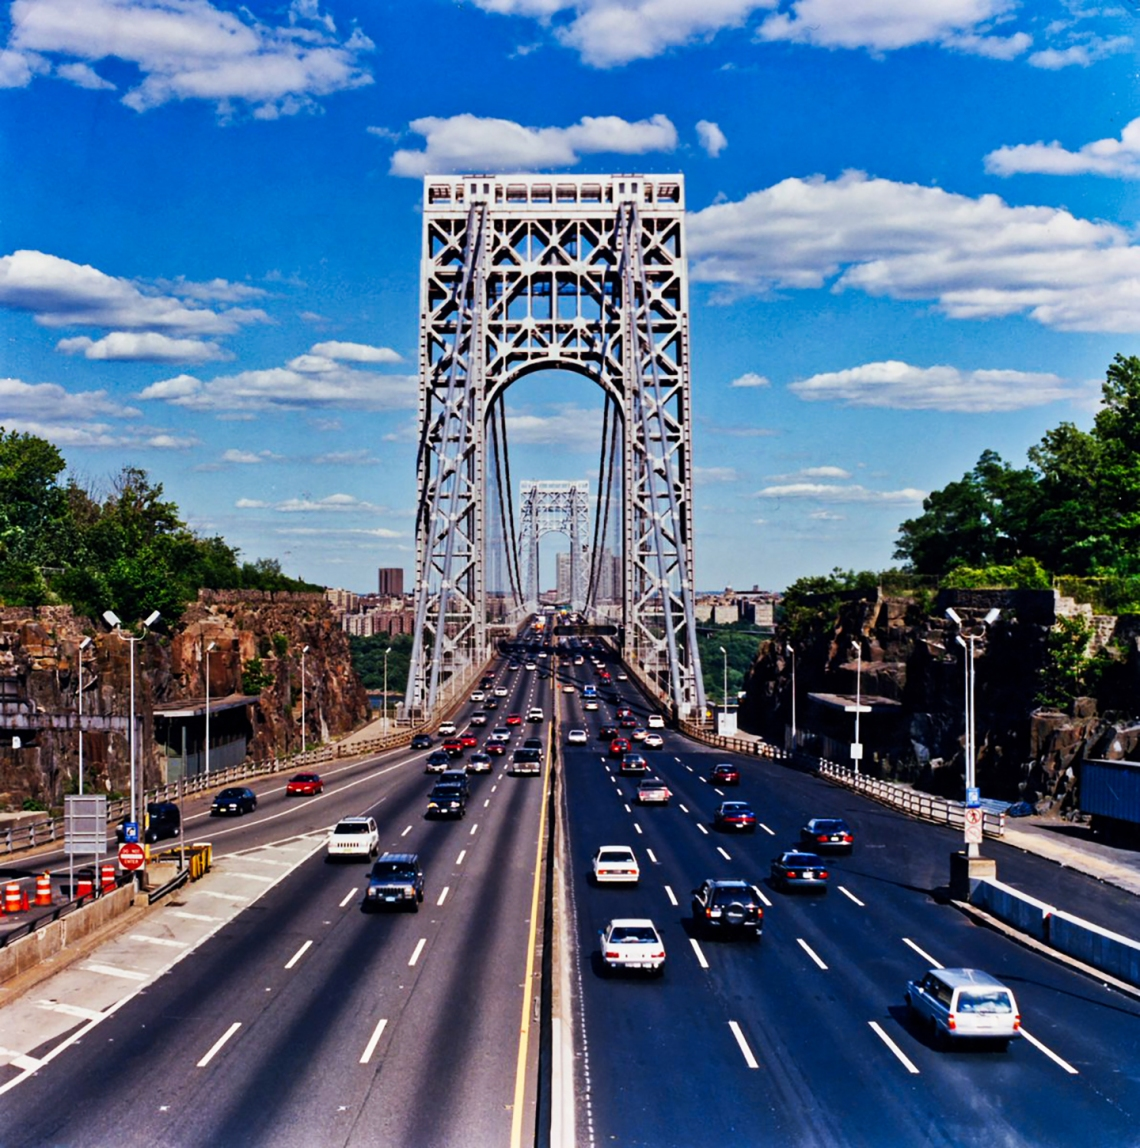 George Washington Bridge02